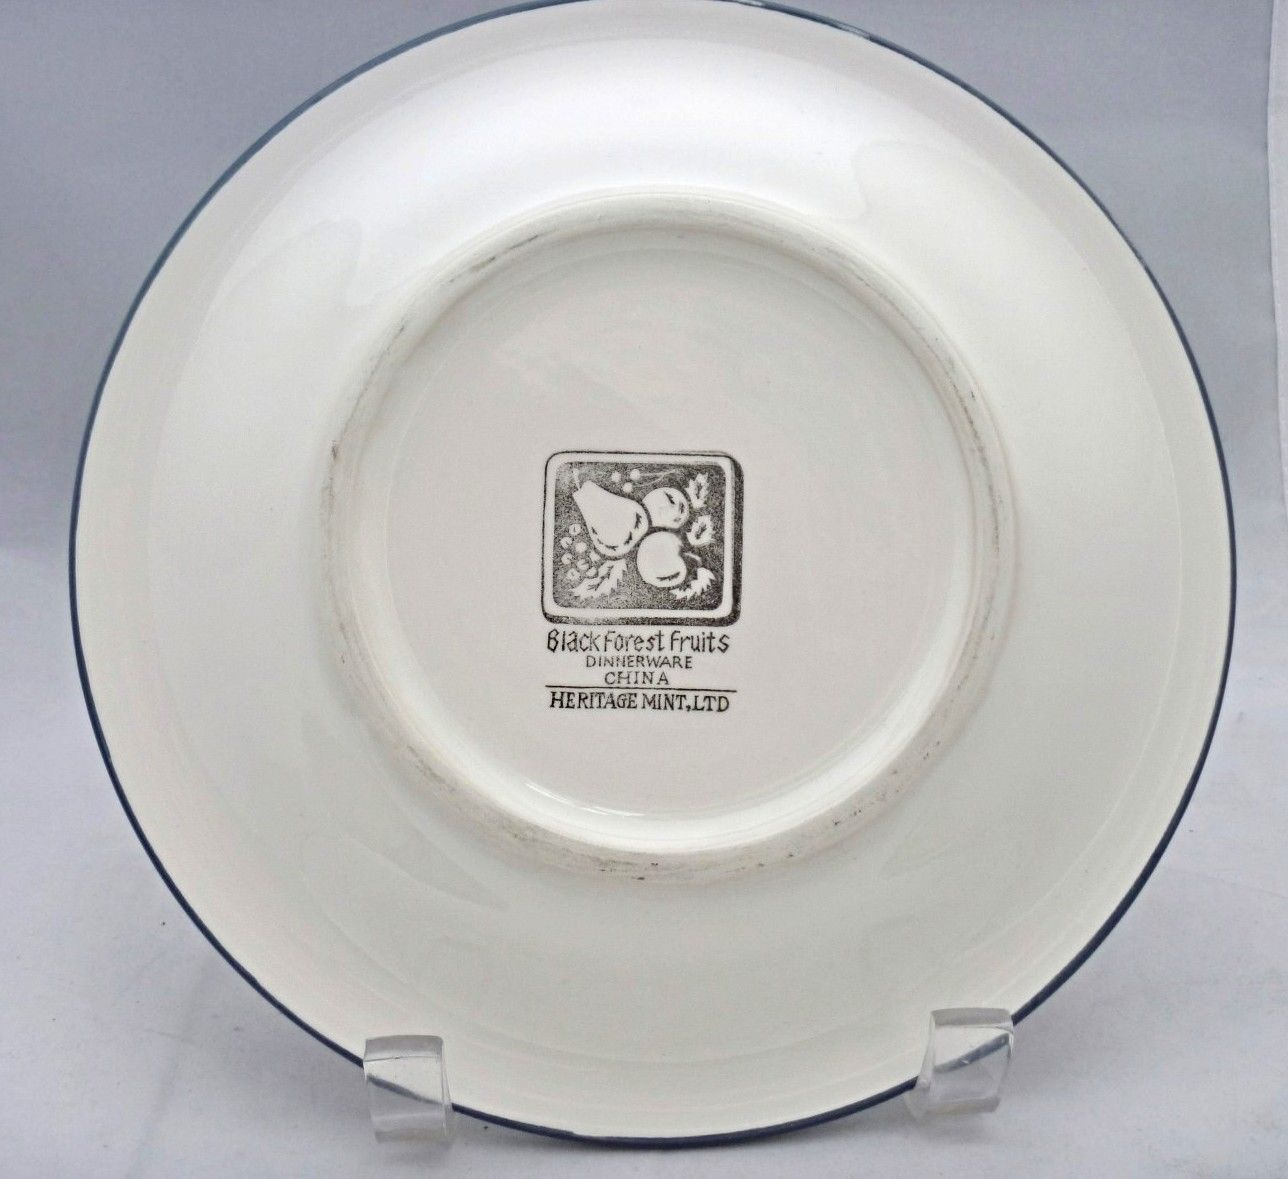 Decorative Wall Plates Nz : Black forest fruits dinnerware salad plate replacement